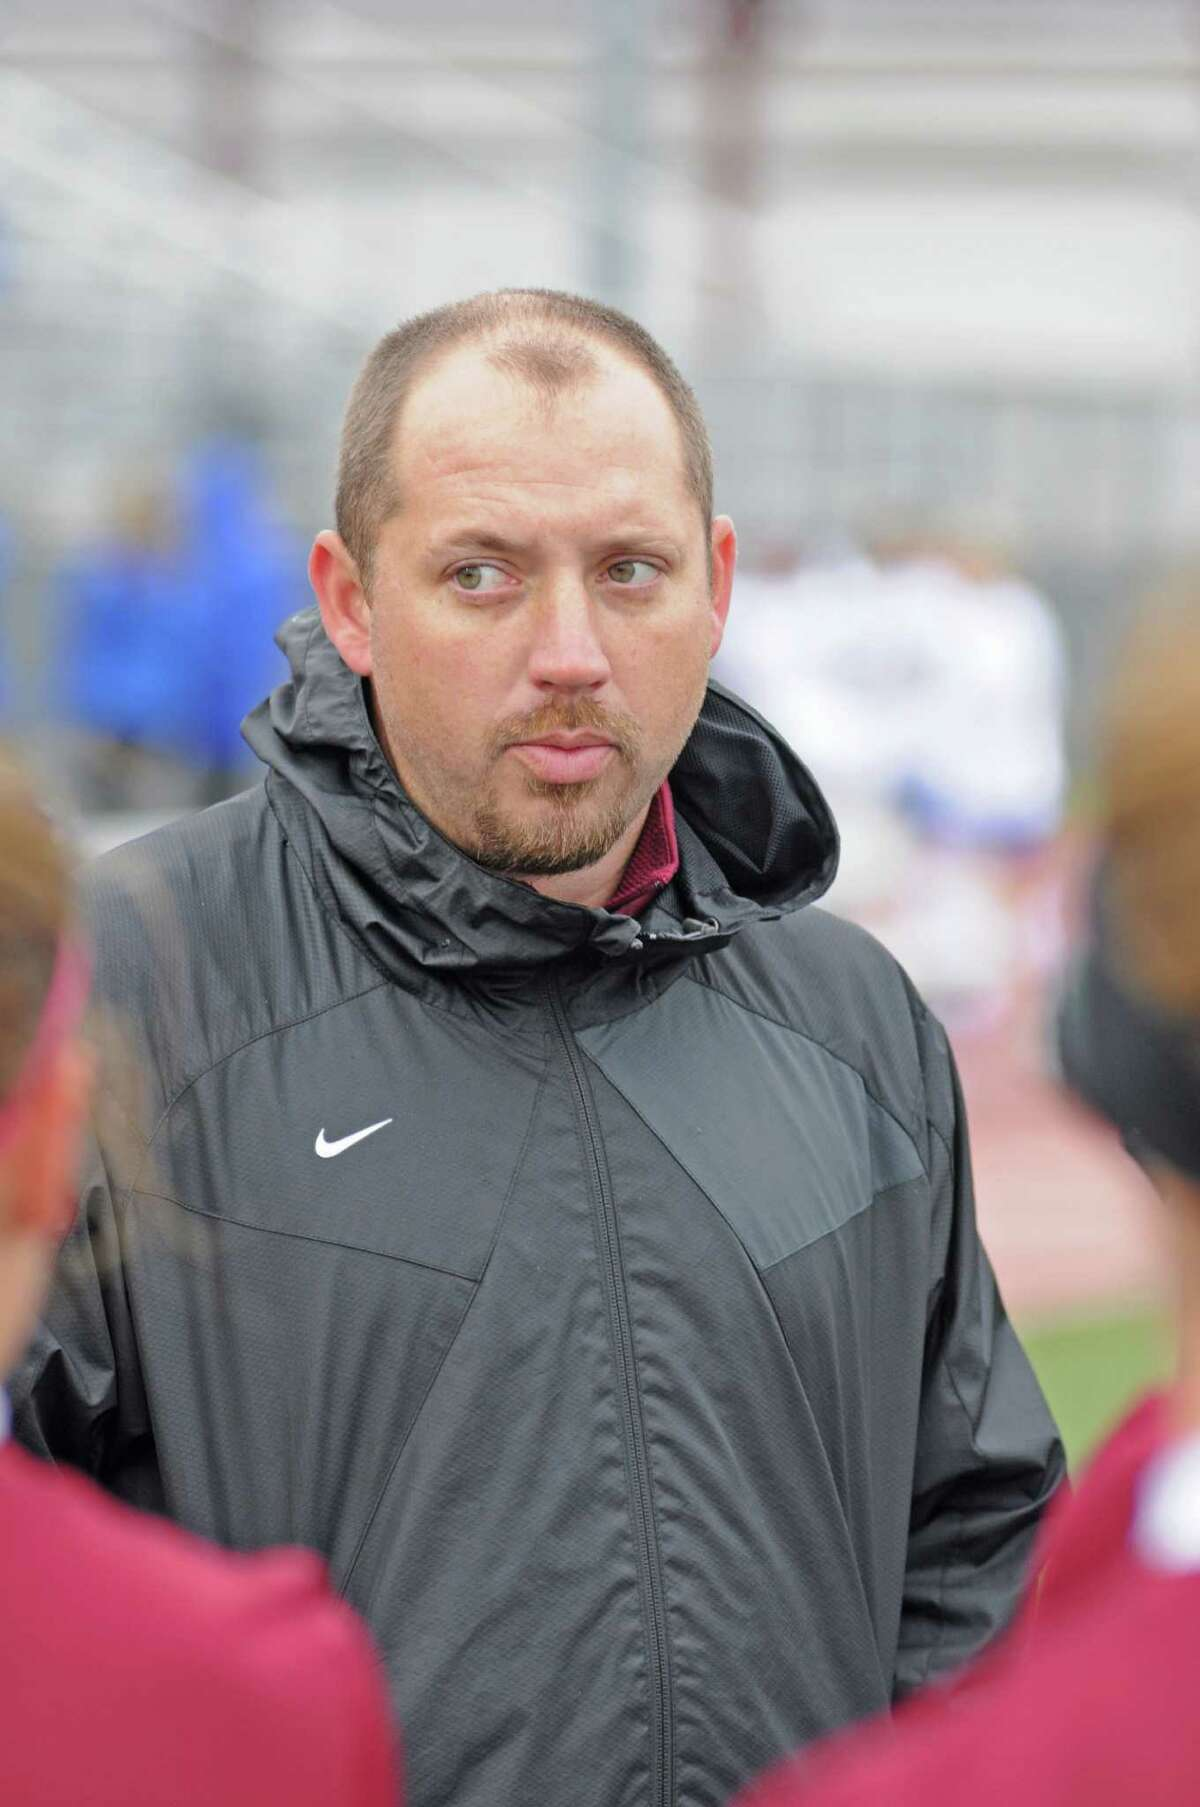 Pearland girls soccer coach Bryan Hayman is in his third season with the Lady Oilers in 2013. Pearland girls soccer hosts a 64-team tournament from Jan. 24-26, 2013 with games scheduled to be played at The Rig and other Pearland ISD locations, and at Manvel and Alvin High Schools.